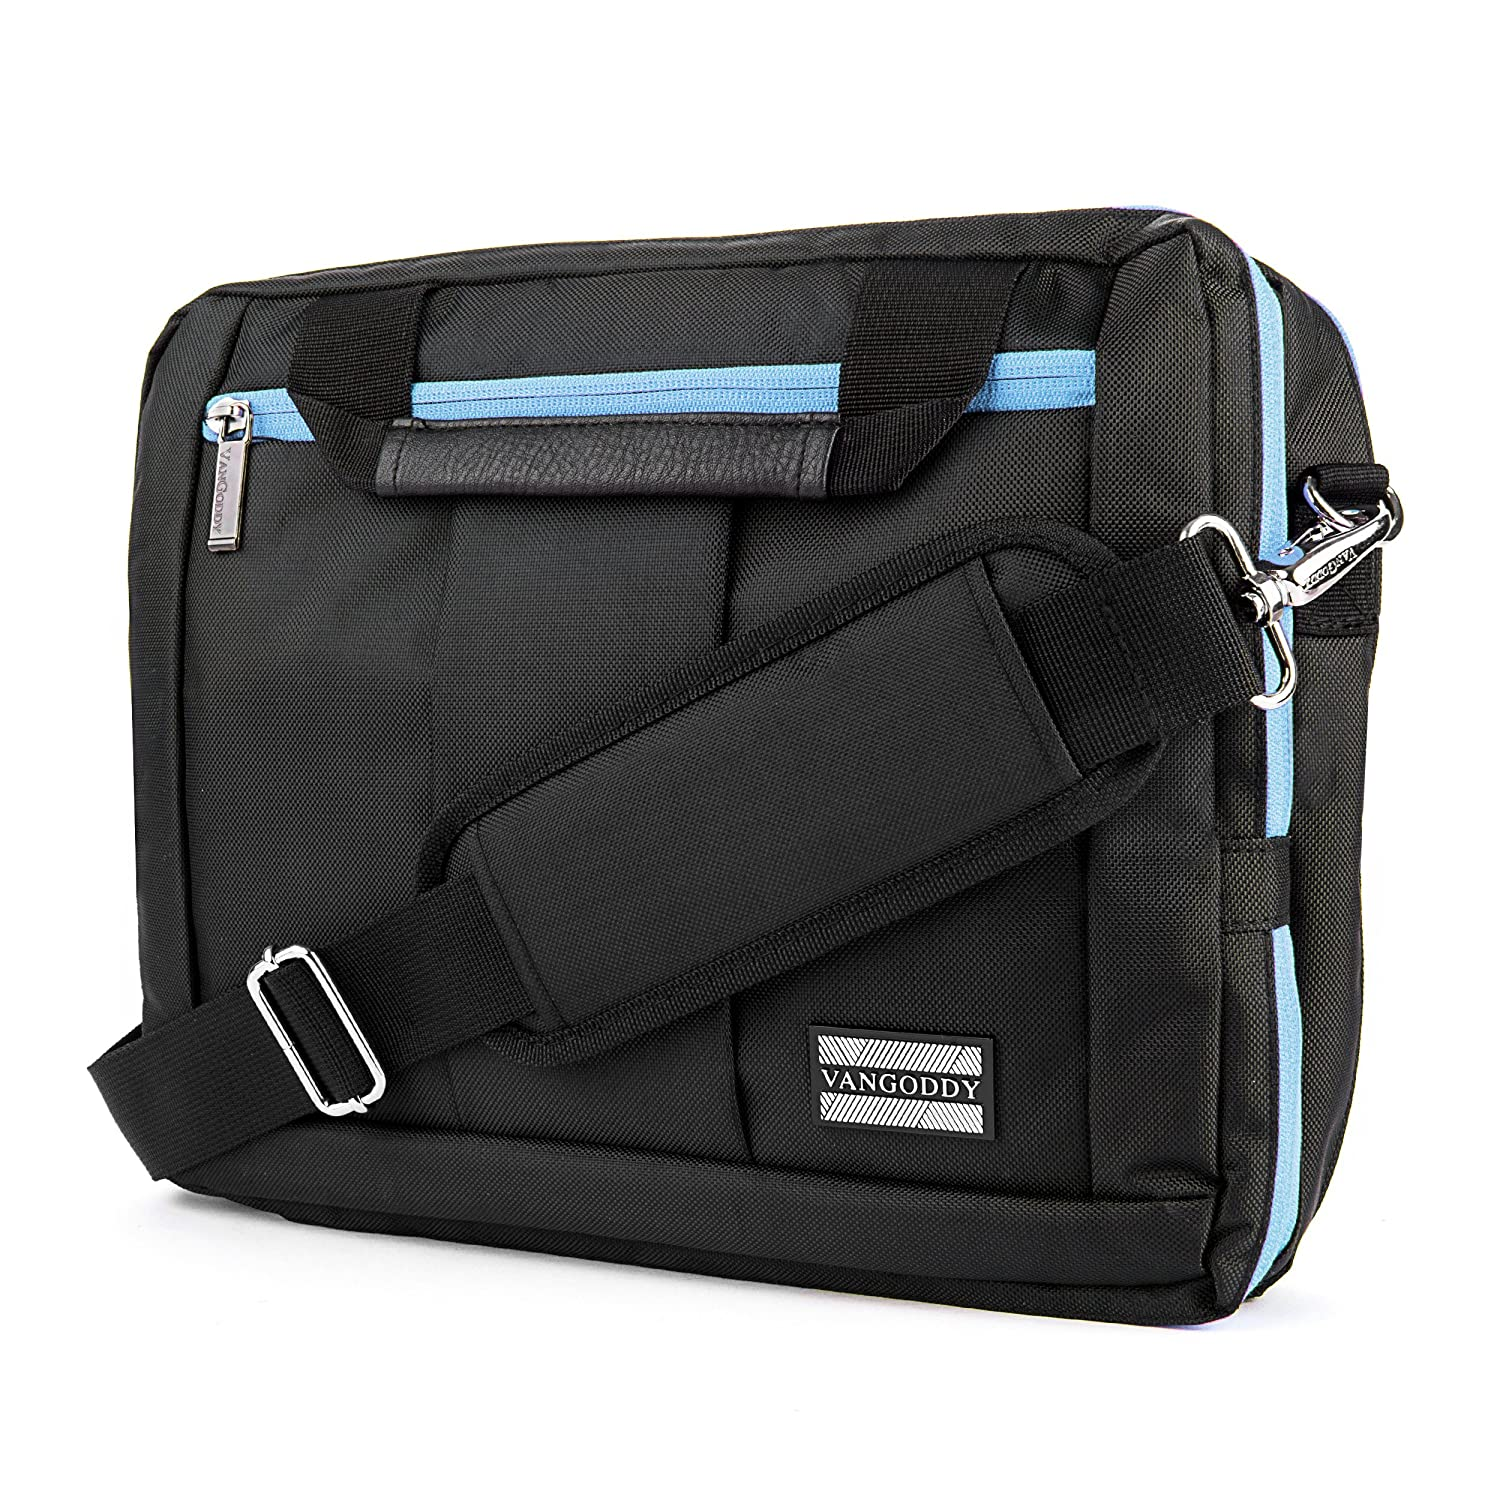 3 in 1 Messenger Bag & Backpack for Microsoft Surface Book 13.5 inch Laptops high-quality